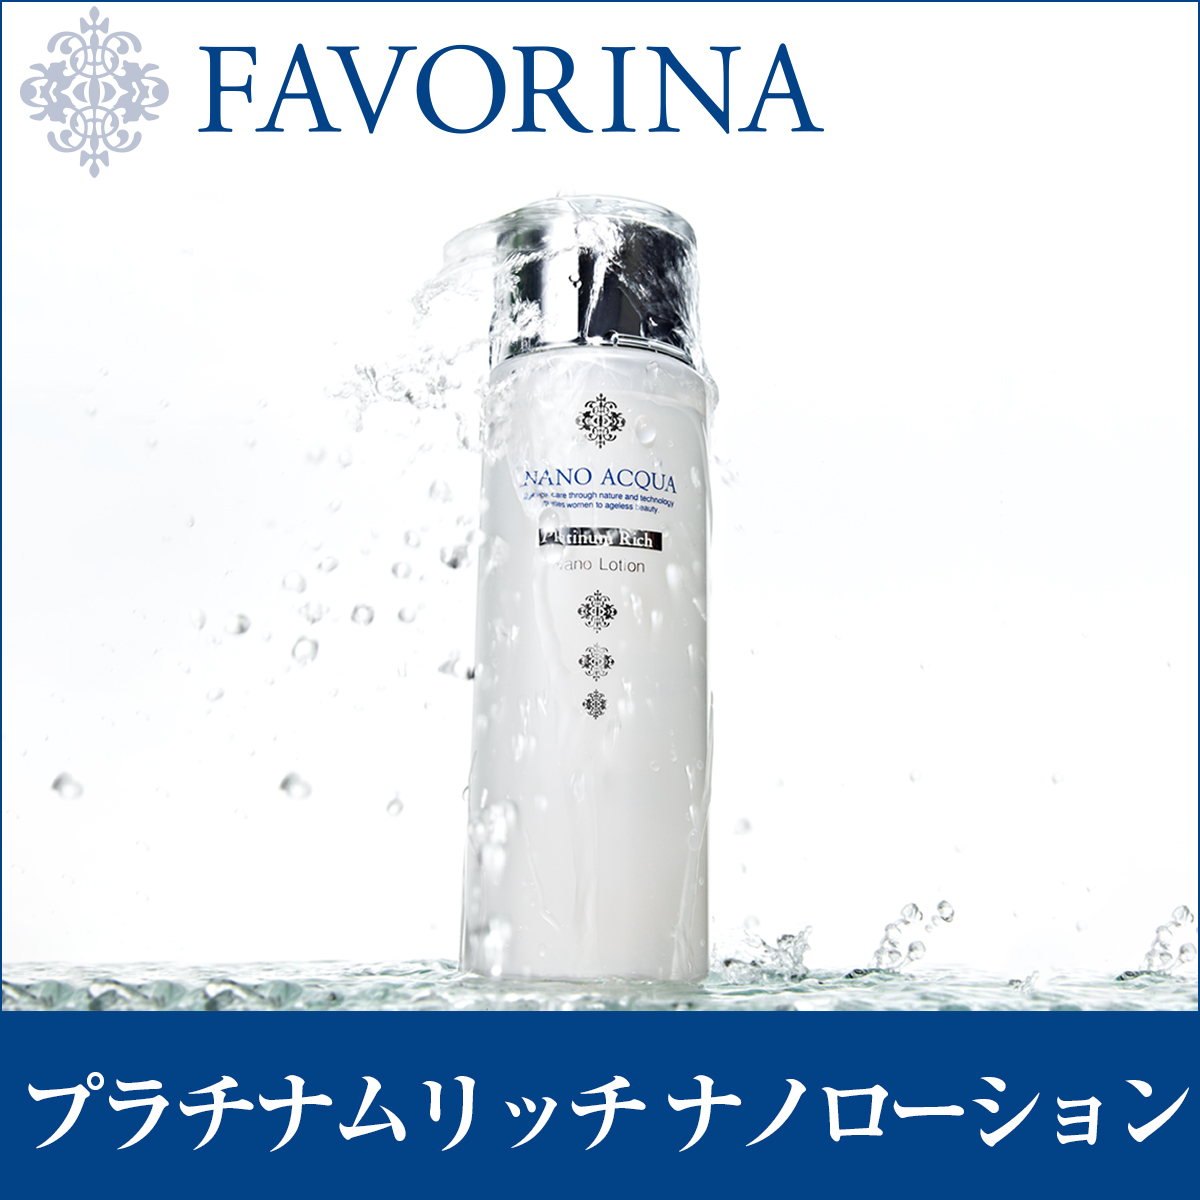 Feverina / Nano Aqua Platinum rich Nano lotion 150 ml FeBrina skin lotion moisturizer moisturizing FAVORINA NANO ACQUA 5P29Aug16